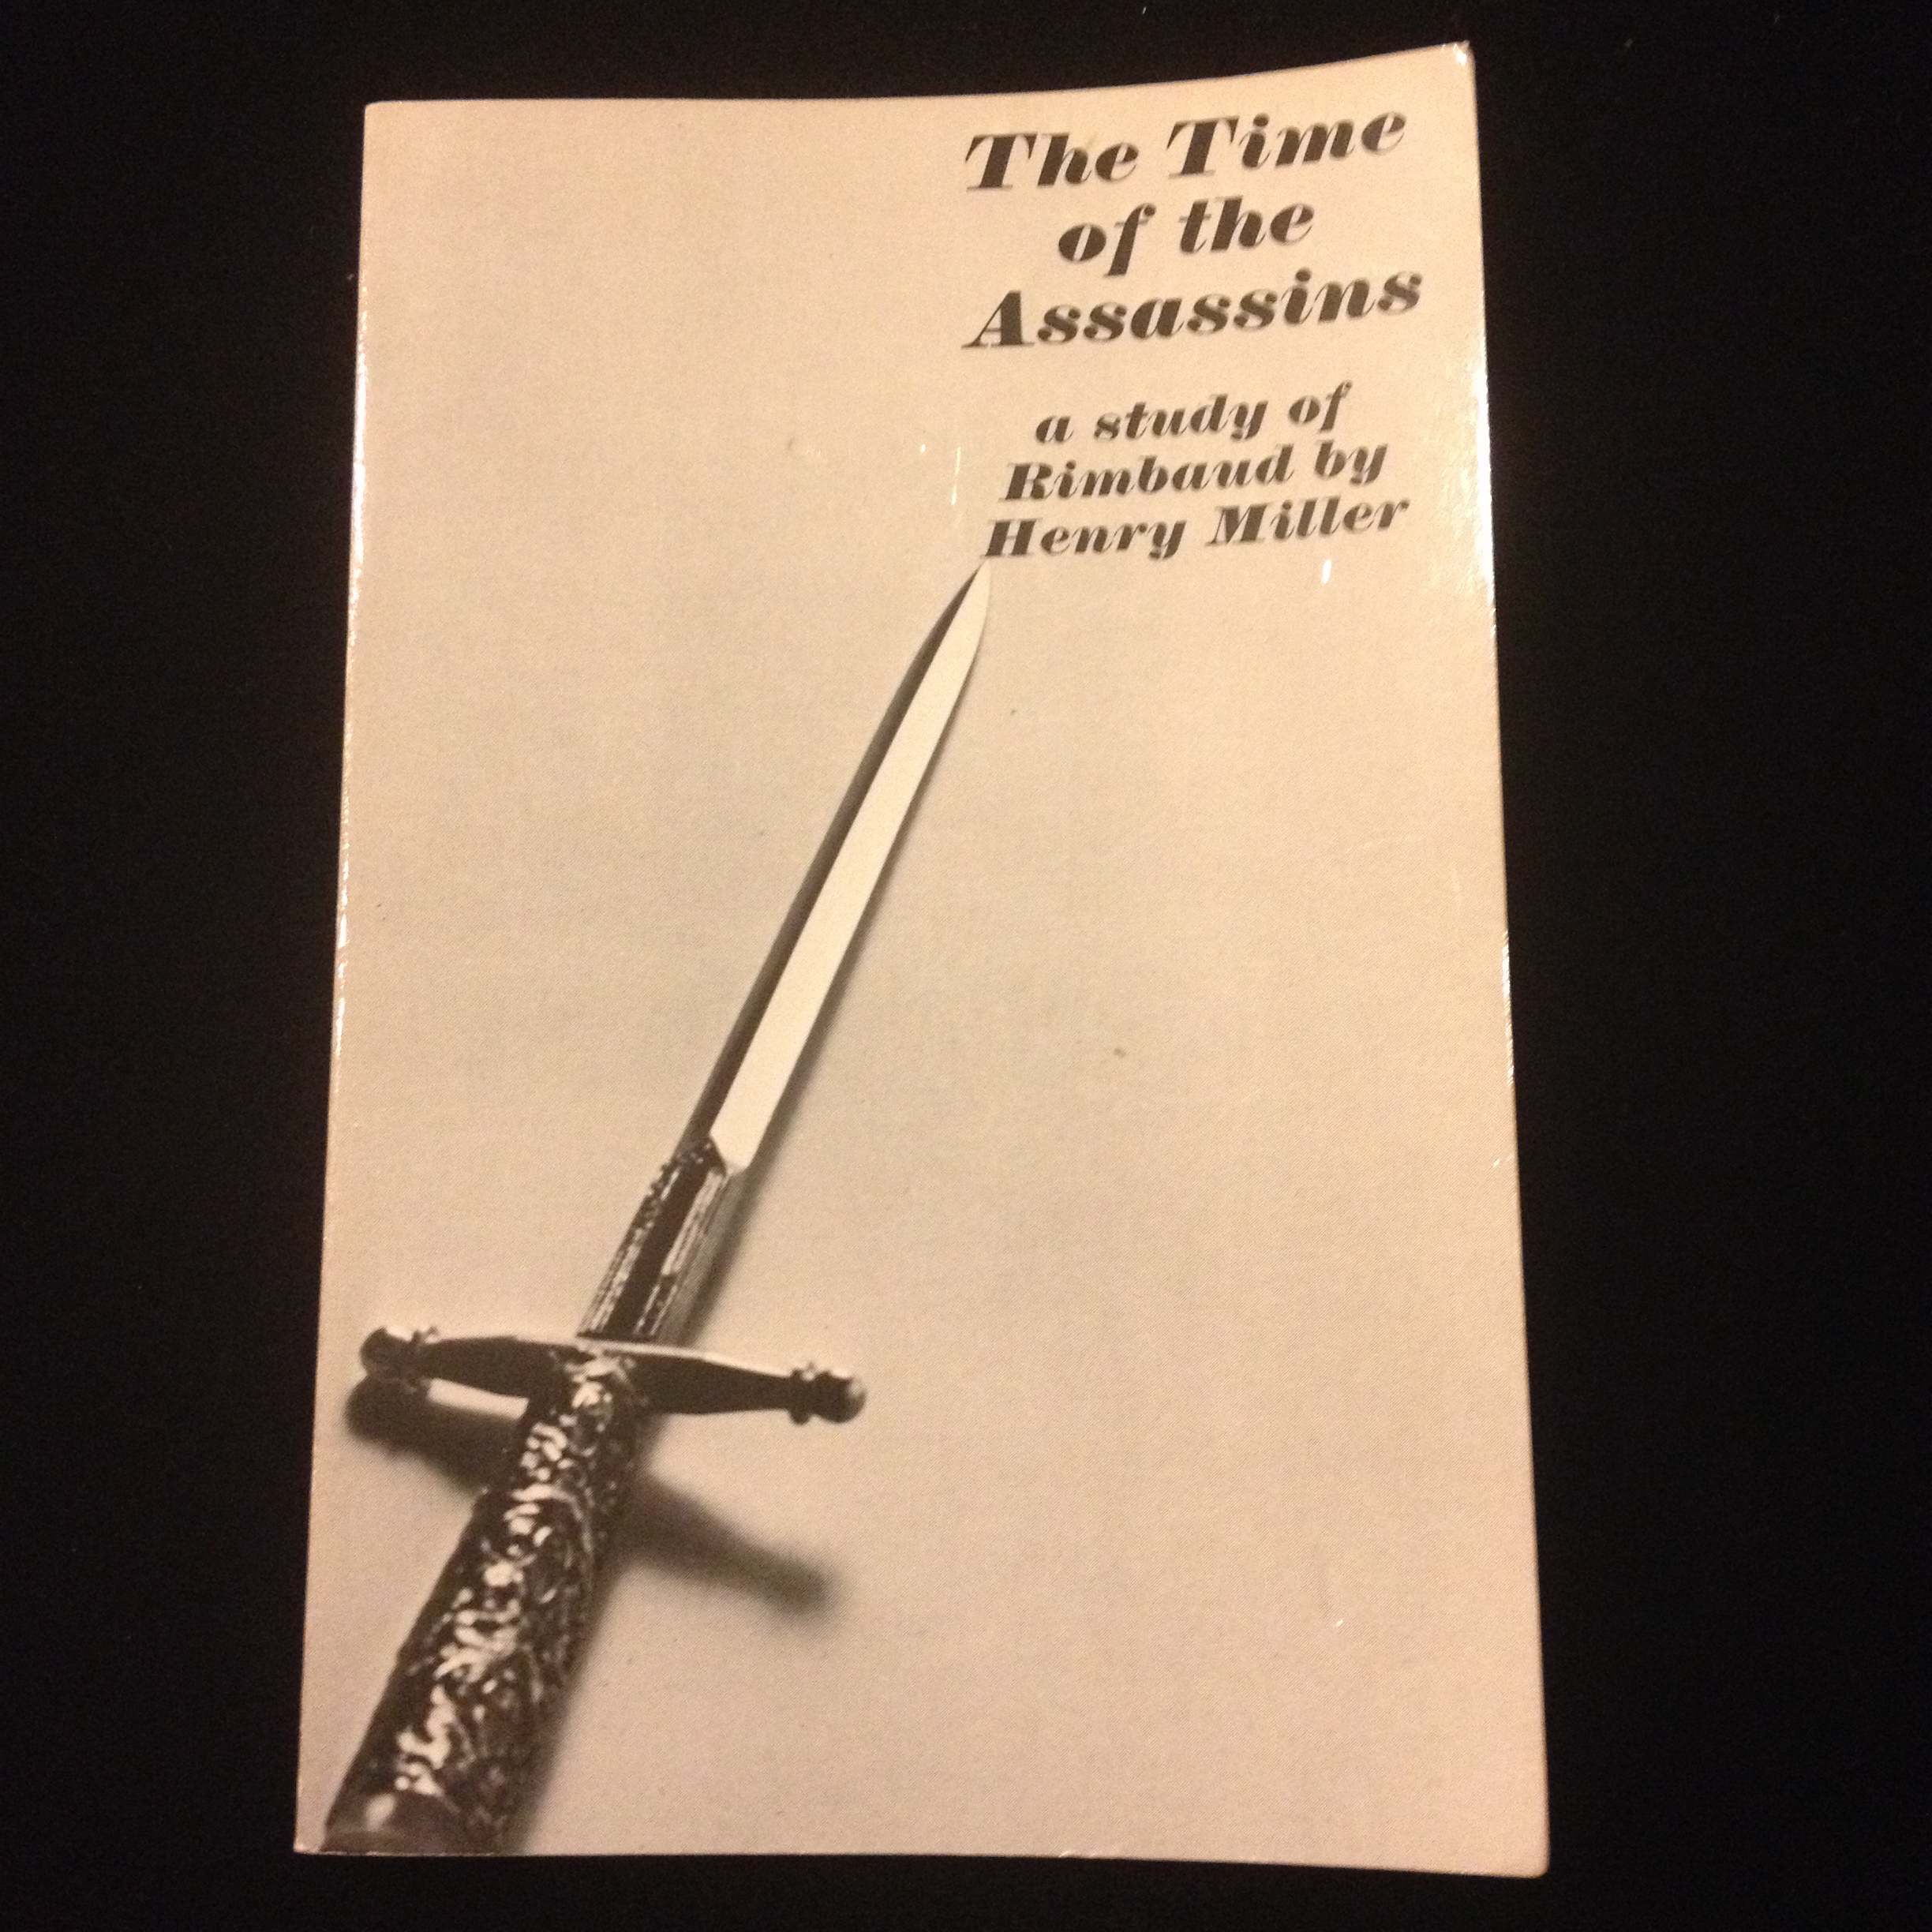 The Time of the Assassins, a study of Rimbaud, Henry Miller